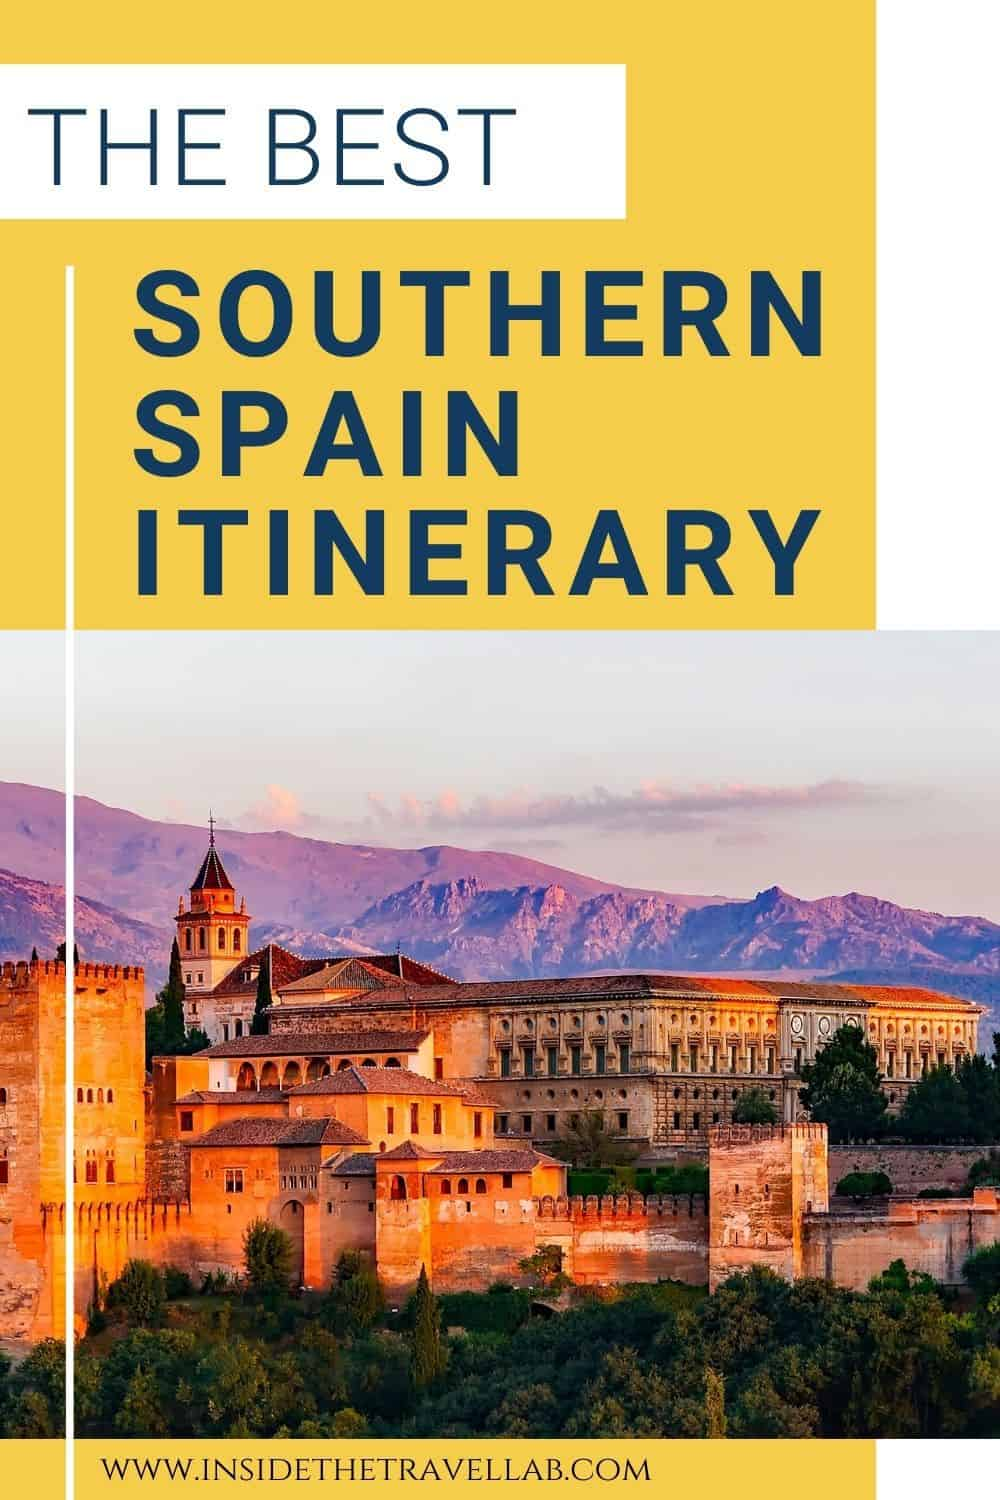 Southern Spain Travel Guide and Southern Spain Road Trip Itinerary - Alhambra in Granada